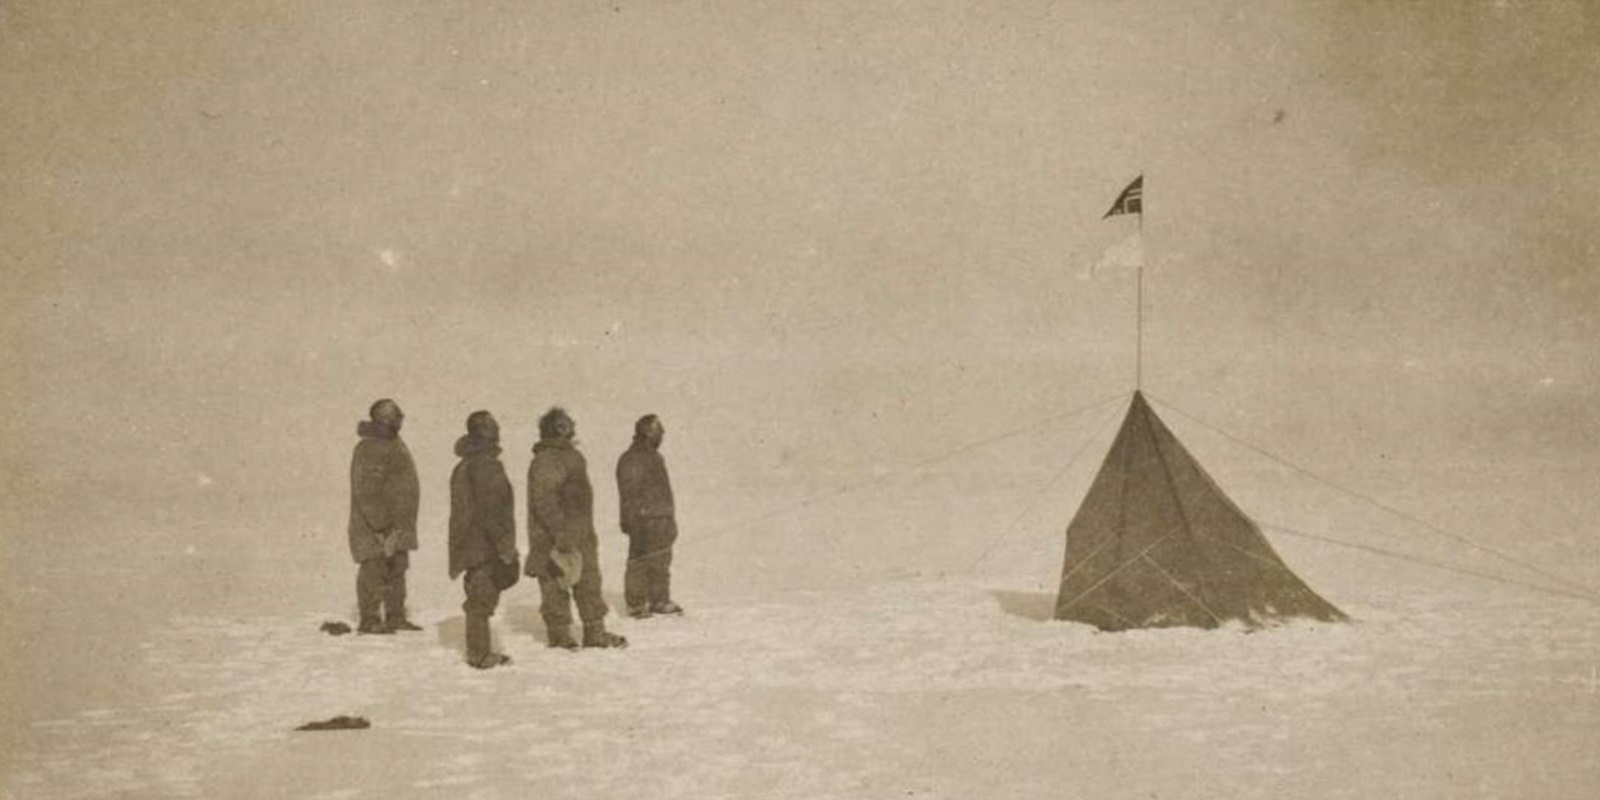 Amundsen at the Geographic South Pole